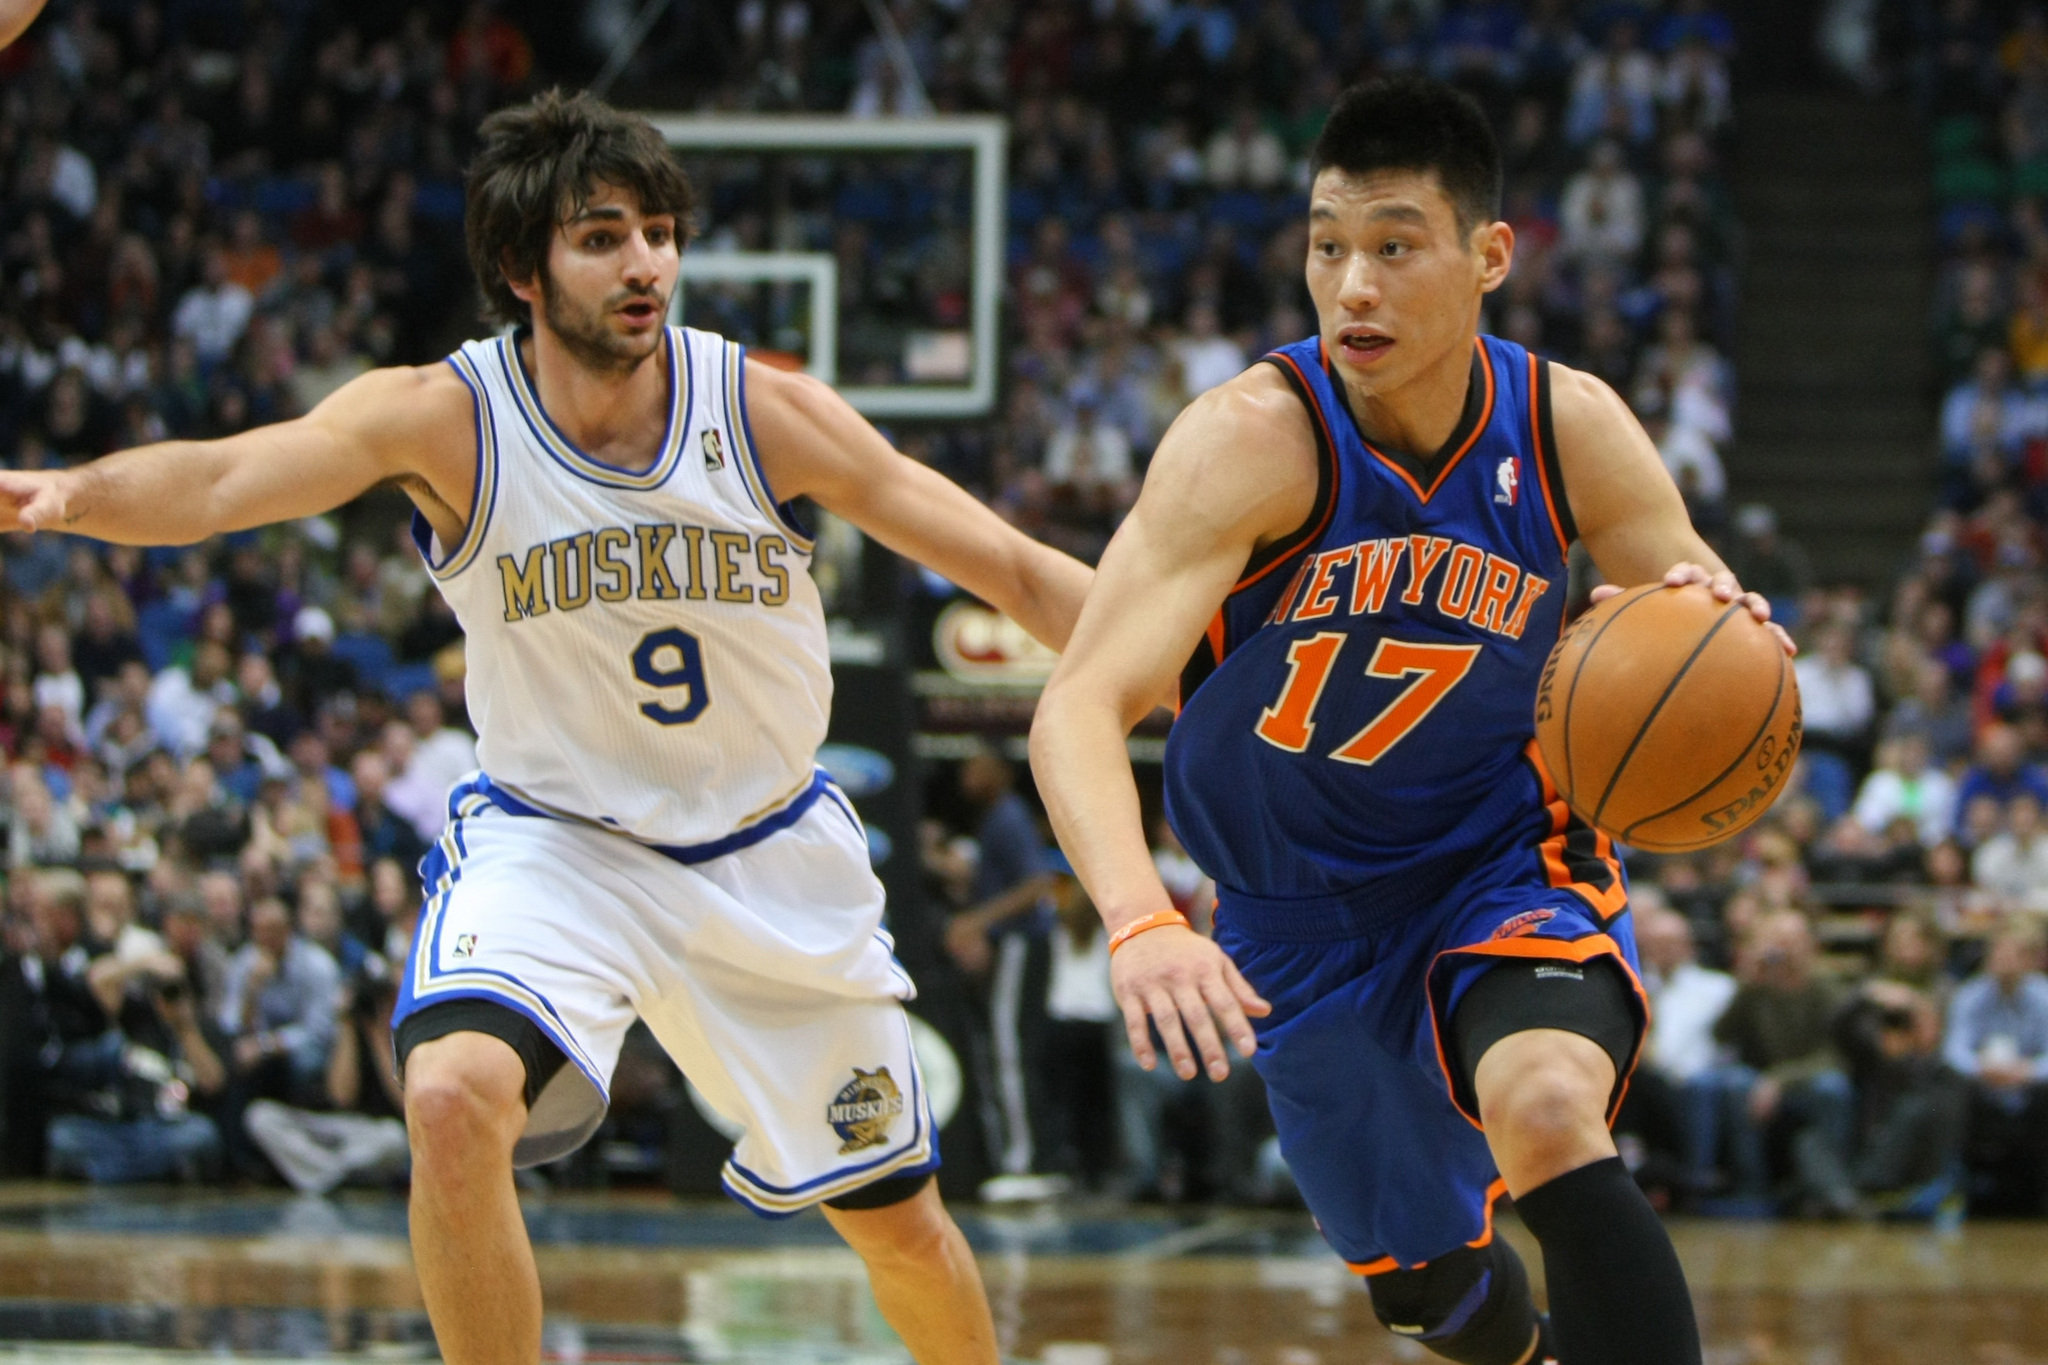 Charitybuzz meet nbas newest lin sation jeremy lin feb 22 get 4 detail m4hsunfo Choice Image